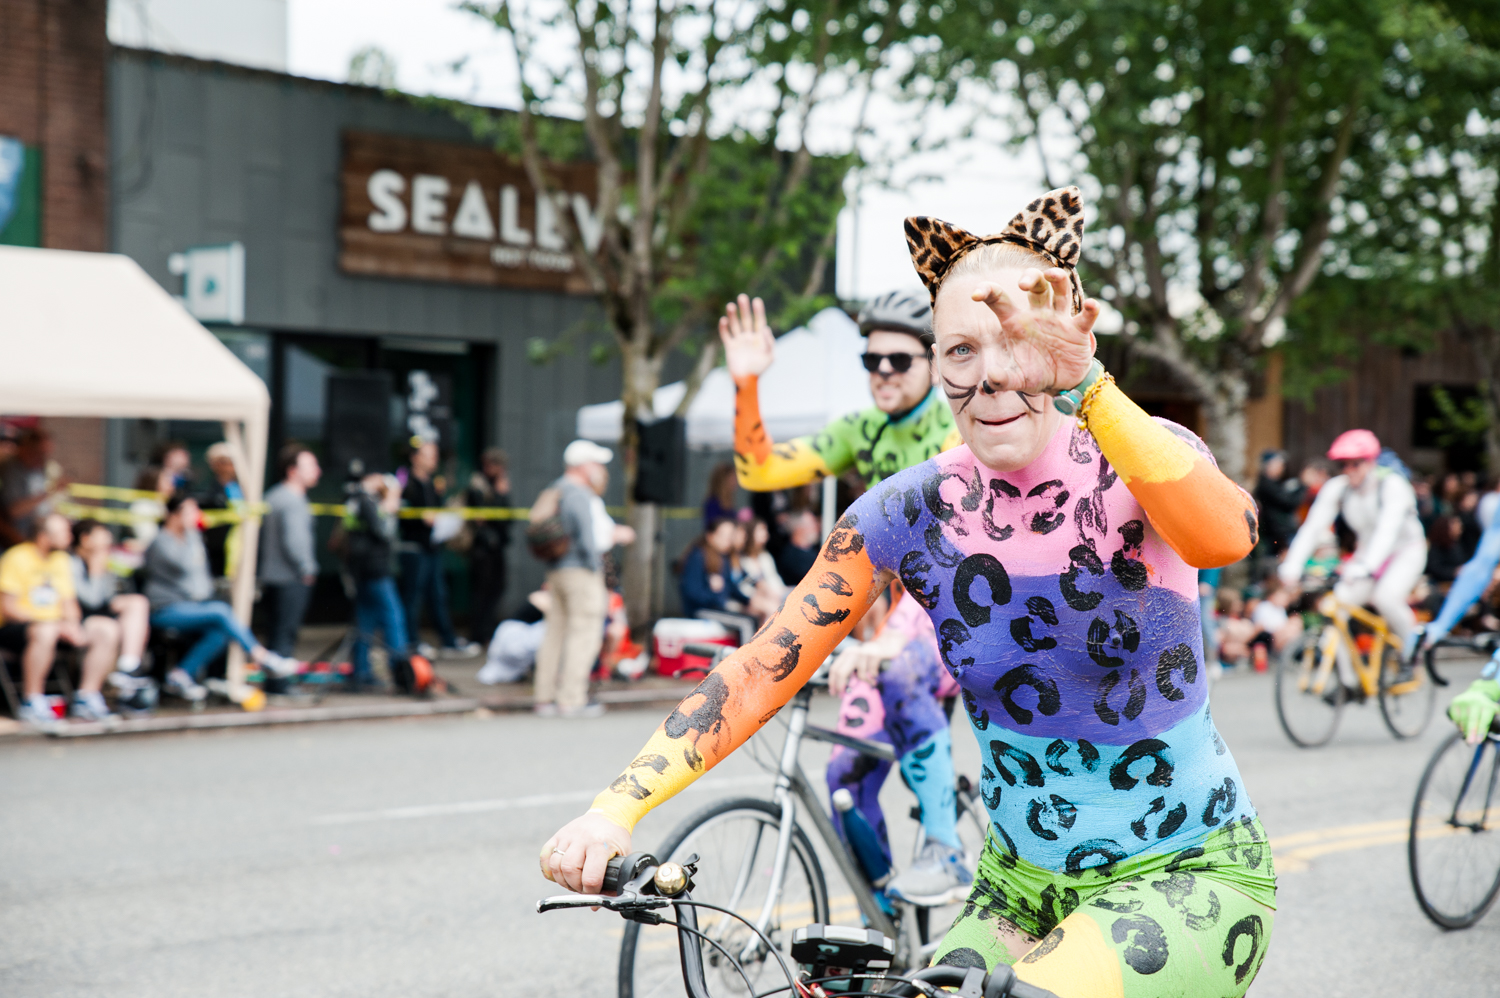 "2019 Fremont Solstice Parade. Today we're celebrating what would have been the 2020 Fremont Solstice Parade with a look back at parade's past and remembering how downright wild and wacky they are. We know you're missing that creative release Seattle - we are too! The Fremont Artist Council is{&nbsp;}<a  href=""https://fremontartscouncil.org/parade/"" target=""_blank"" title=""https://fremontartscouncil.org/parade/"">having a Virtual Parade</a>{&nbsp;}and heck, no judgment from us if you want to watch it naked or with body paint on. See you next year… (Image: Elizabeth Crook / Seattle Refined)"